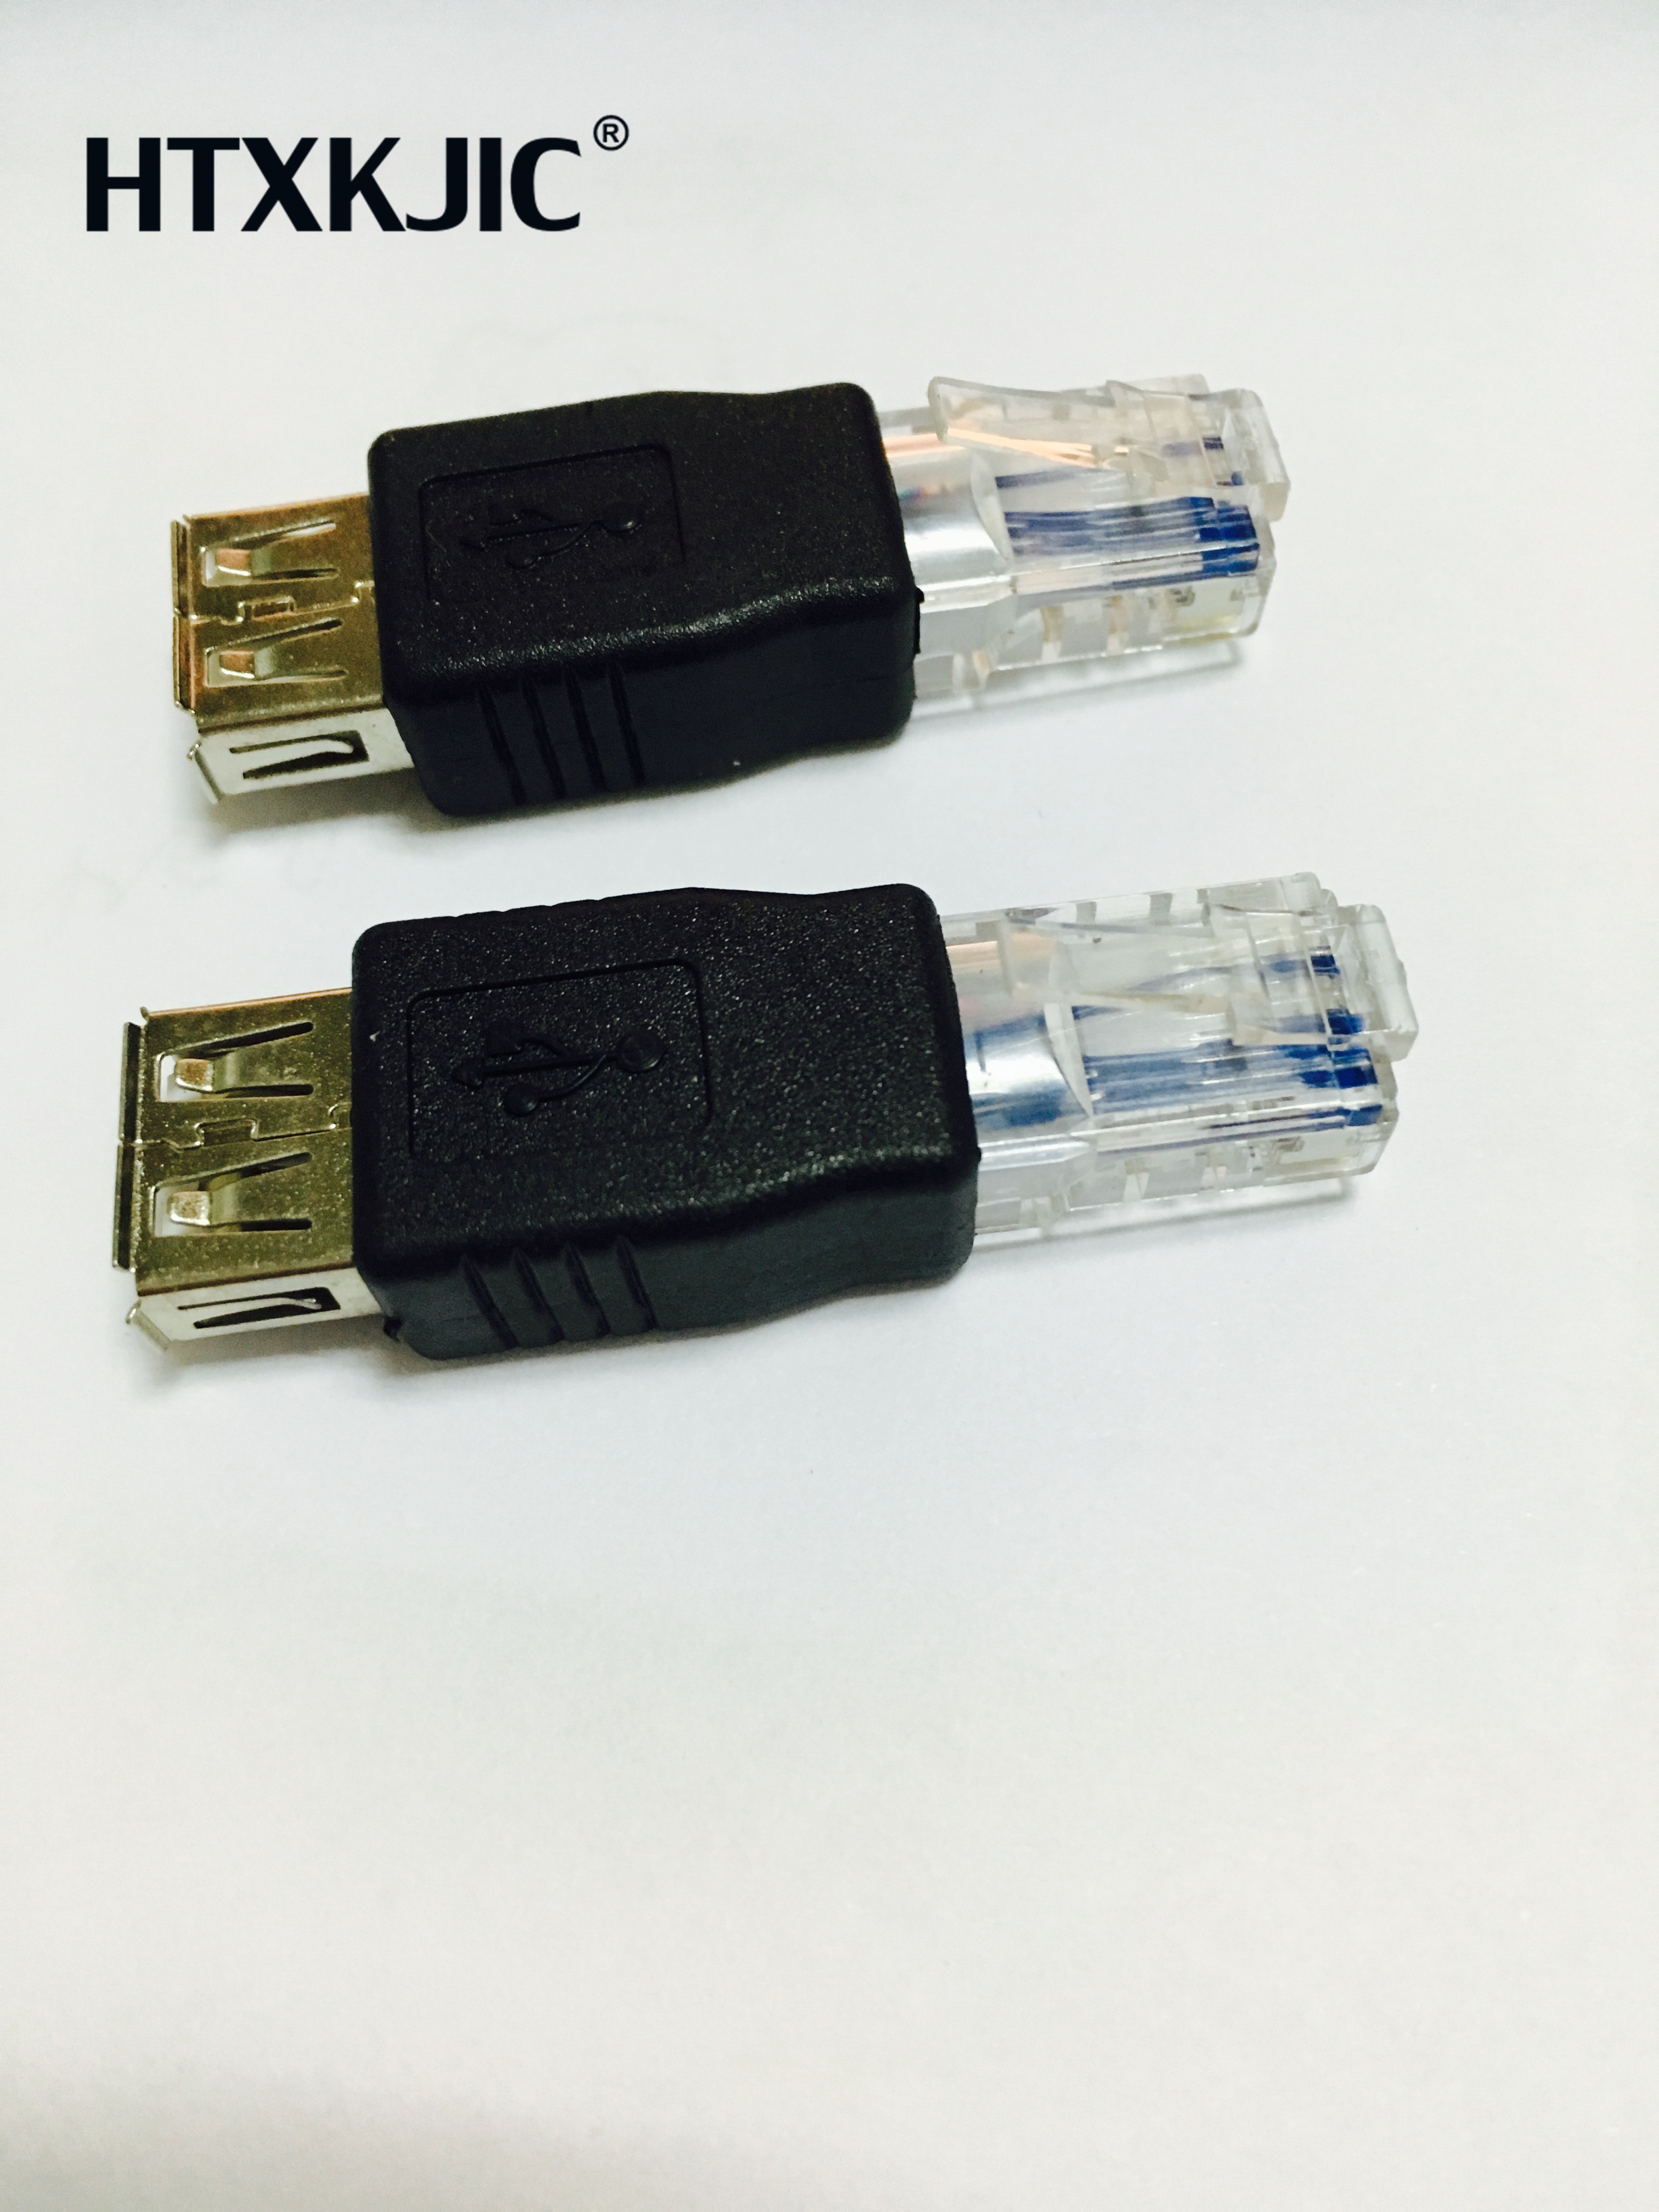 2X 3.5mm Male to 2.5mm Female Stereo Jack Headset Audio Converter Cable Adapter